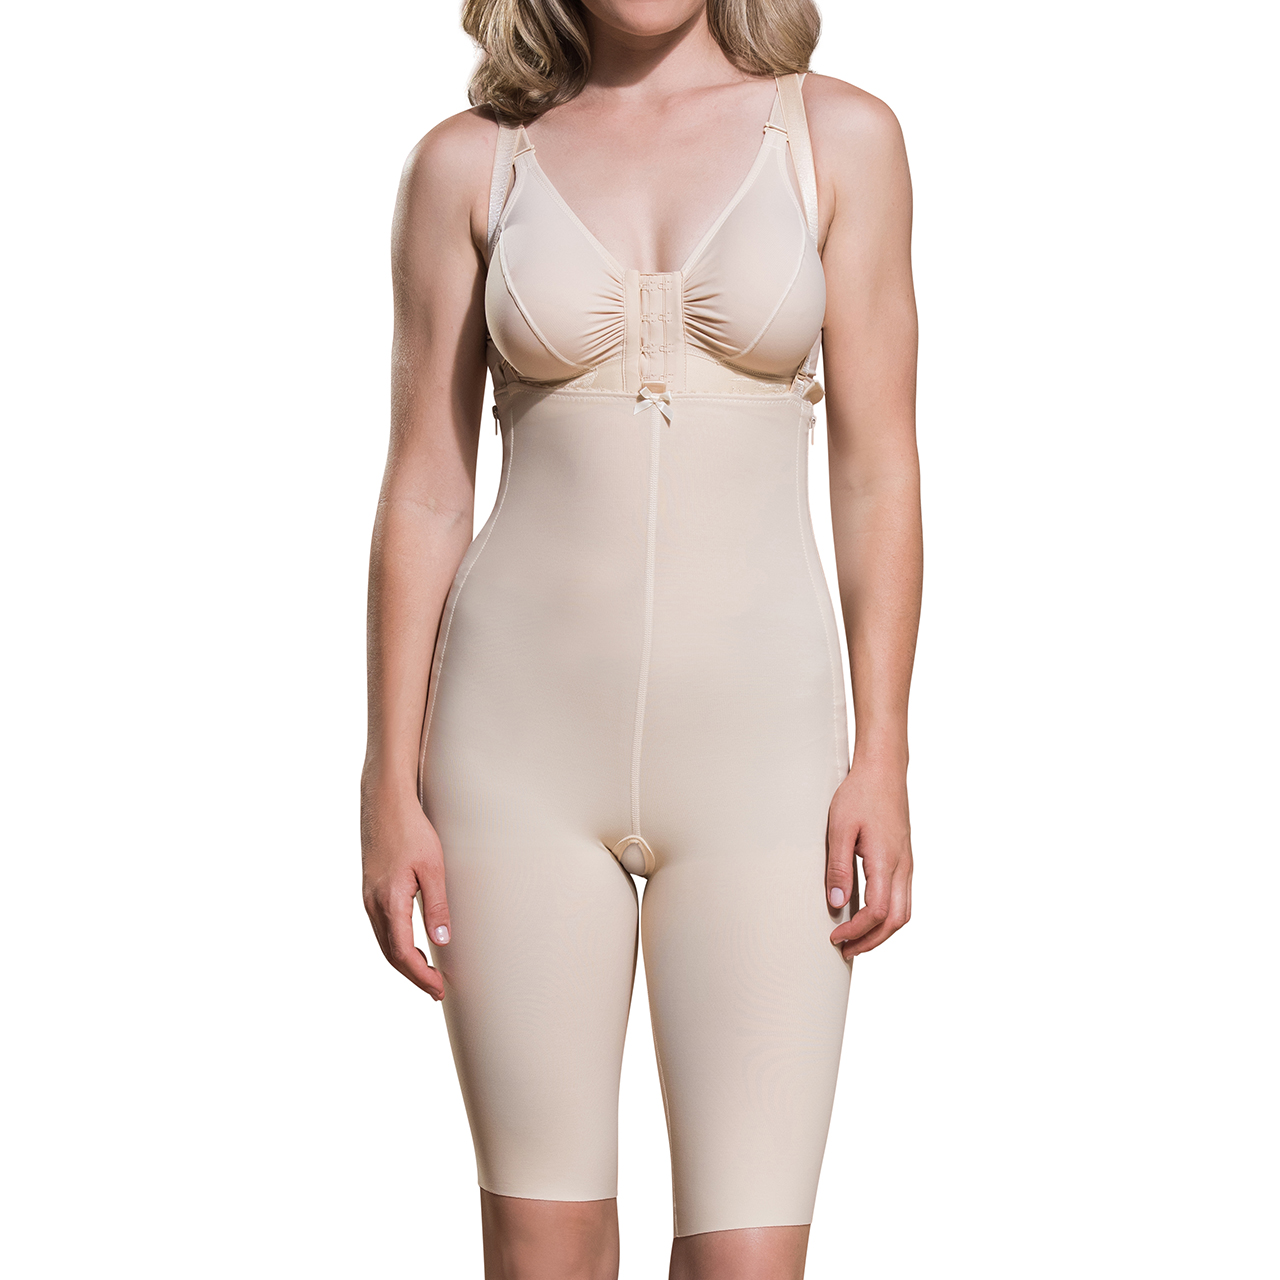 b8764f6a6f6 First Stage Suit with Suspenders and Short Legs by Marena Recovery FBS -  Hourglass Angel